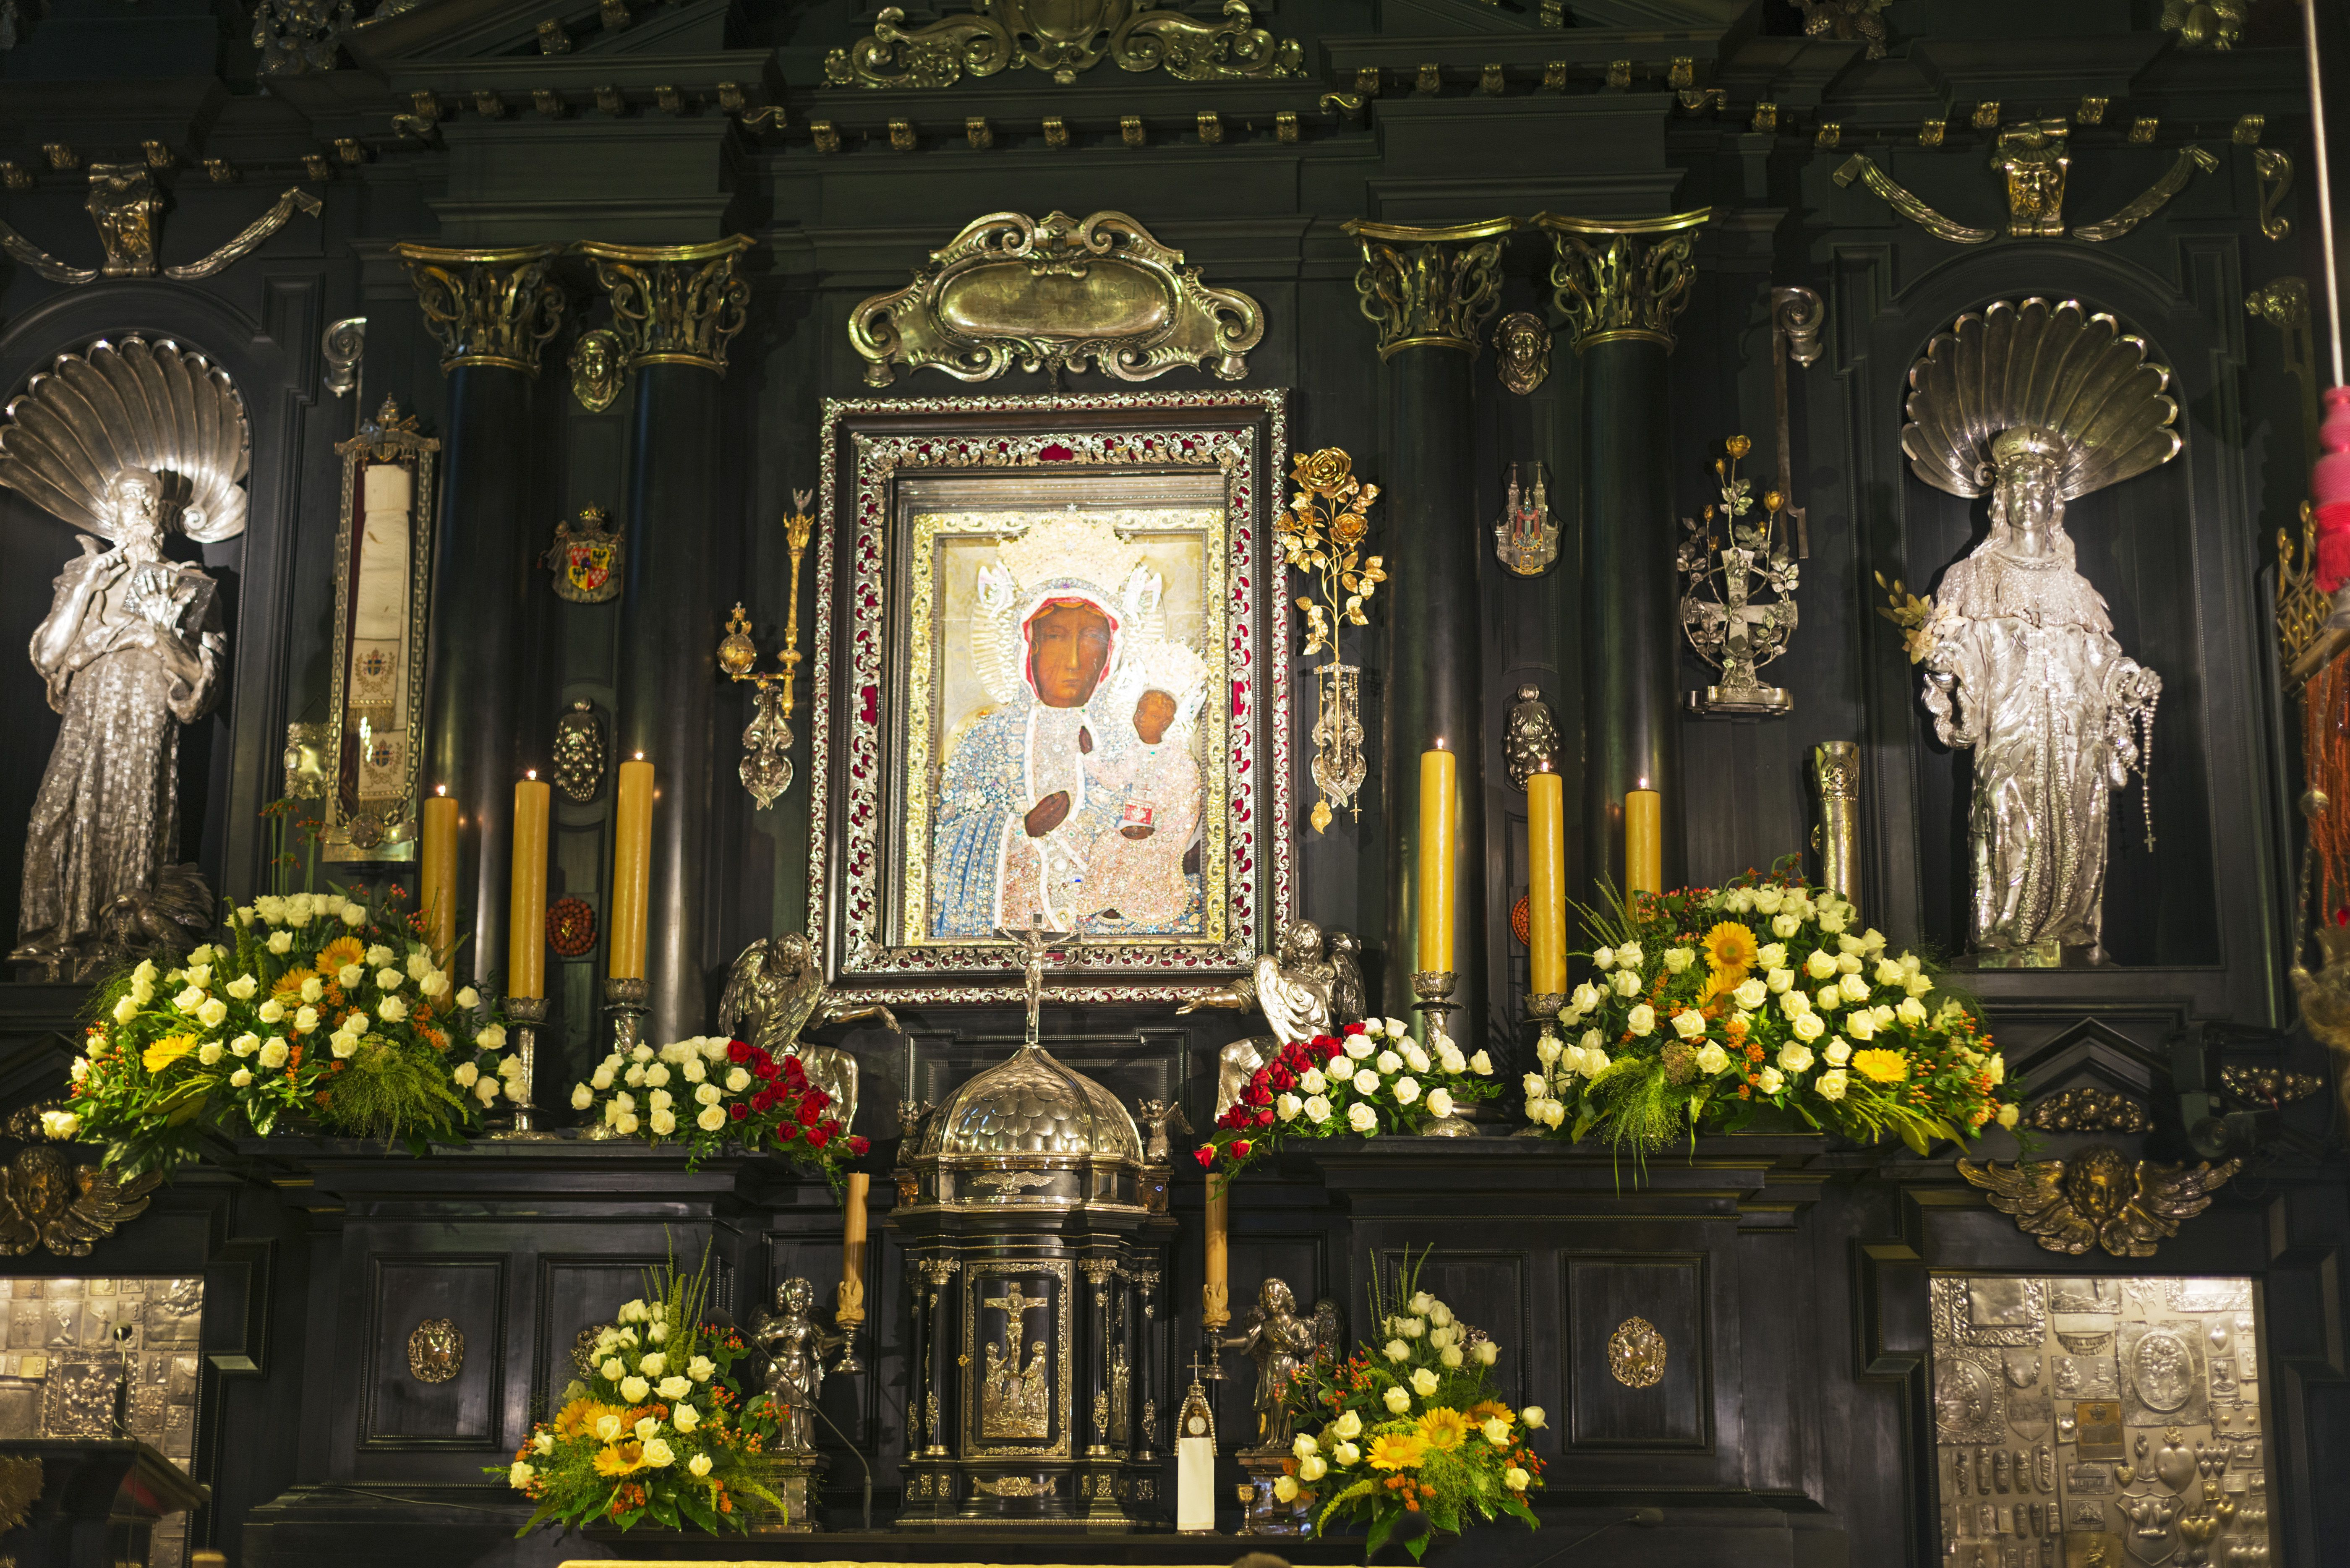 Poland, Malopolska, Czestochowa, Monastery of Jasna Gora, during Marian Feast of Assumption, Black Madonna painting of Virgin Mary and Christ child